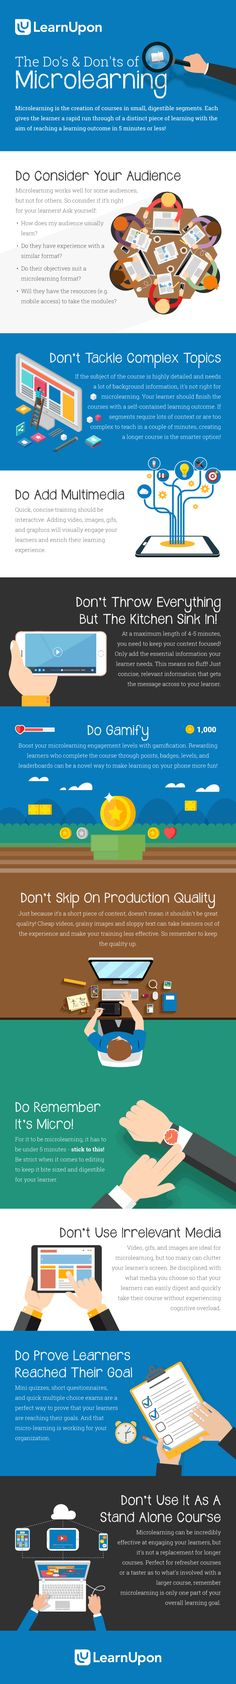 The Do's and Don'ts of Microlearning Infographic - http://elearninginfographics.com/dos-donts-microlearning-infographic/